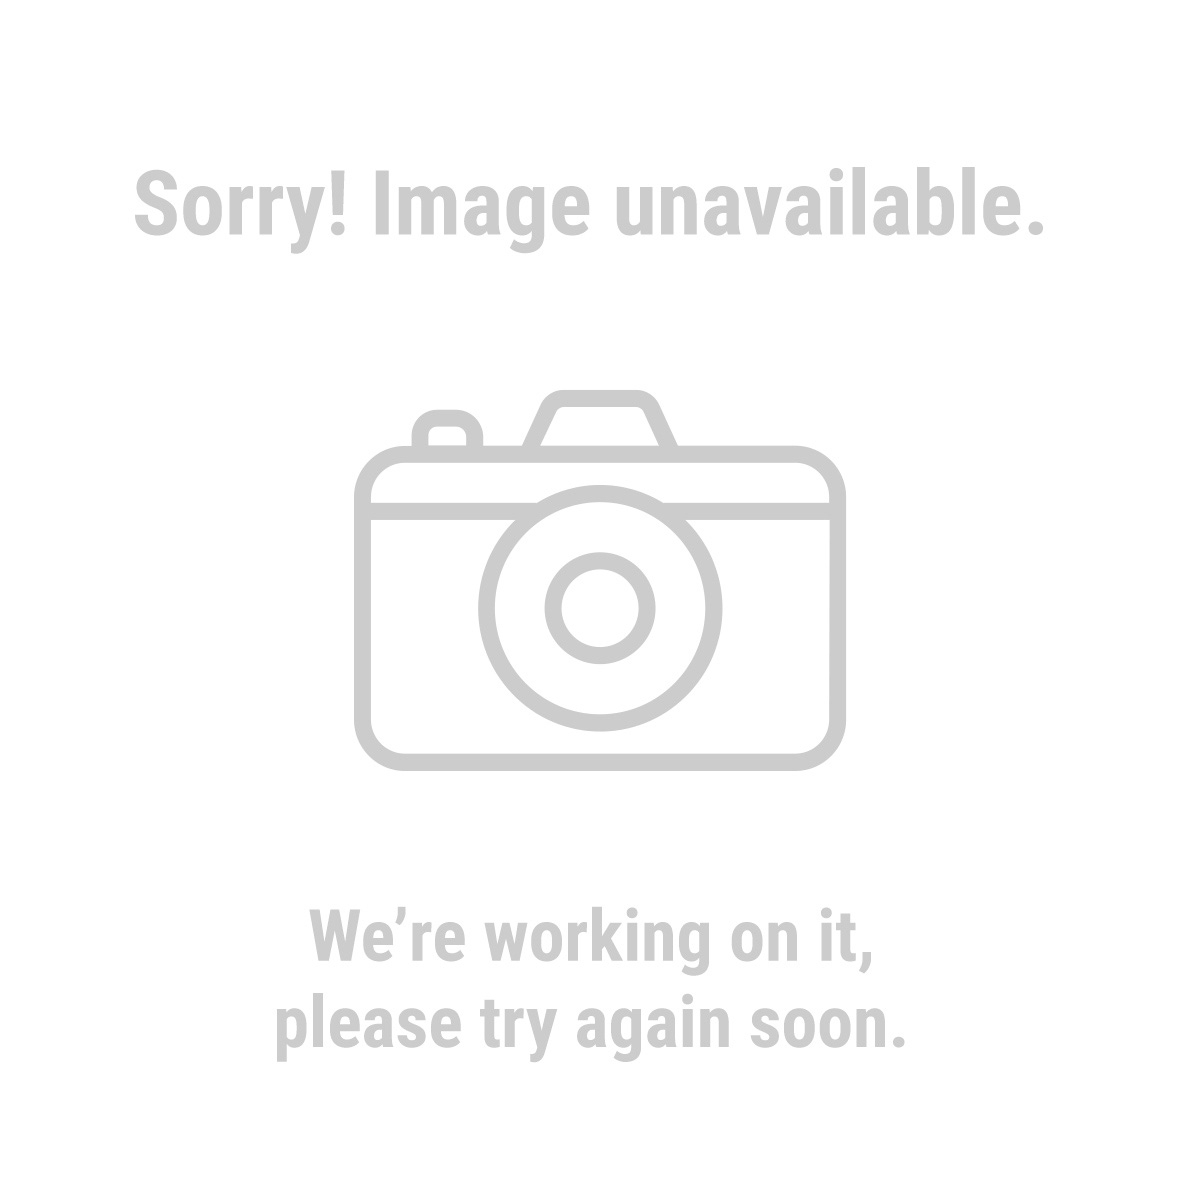 Pittsburgh 67909 Piece 3/8 in. Drive SAE Impact Socket Set